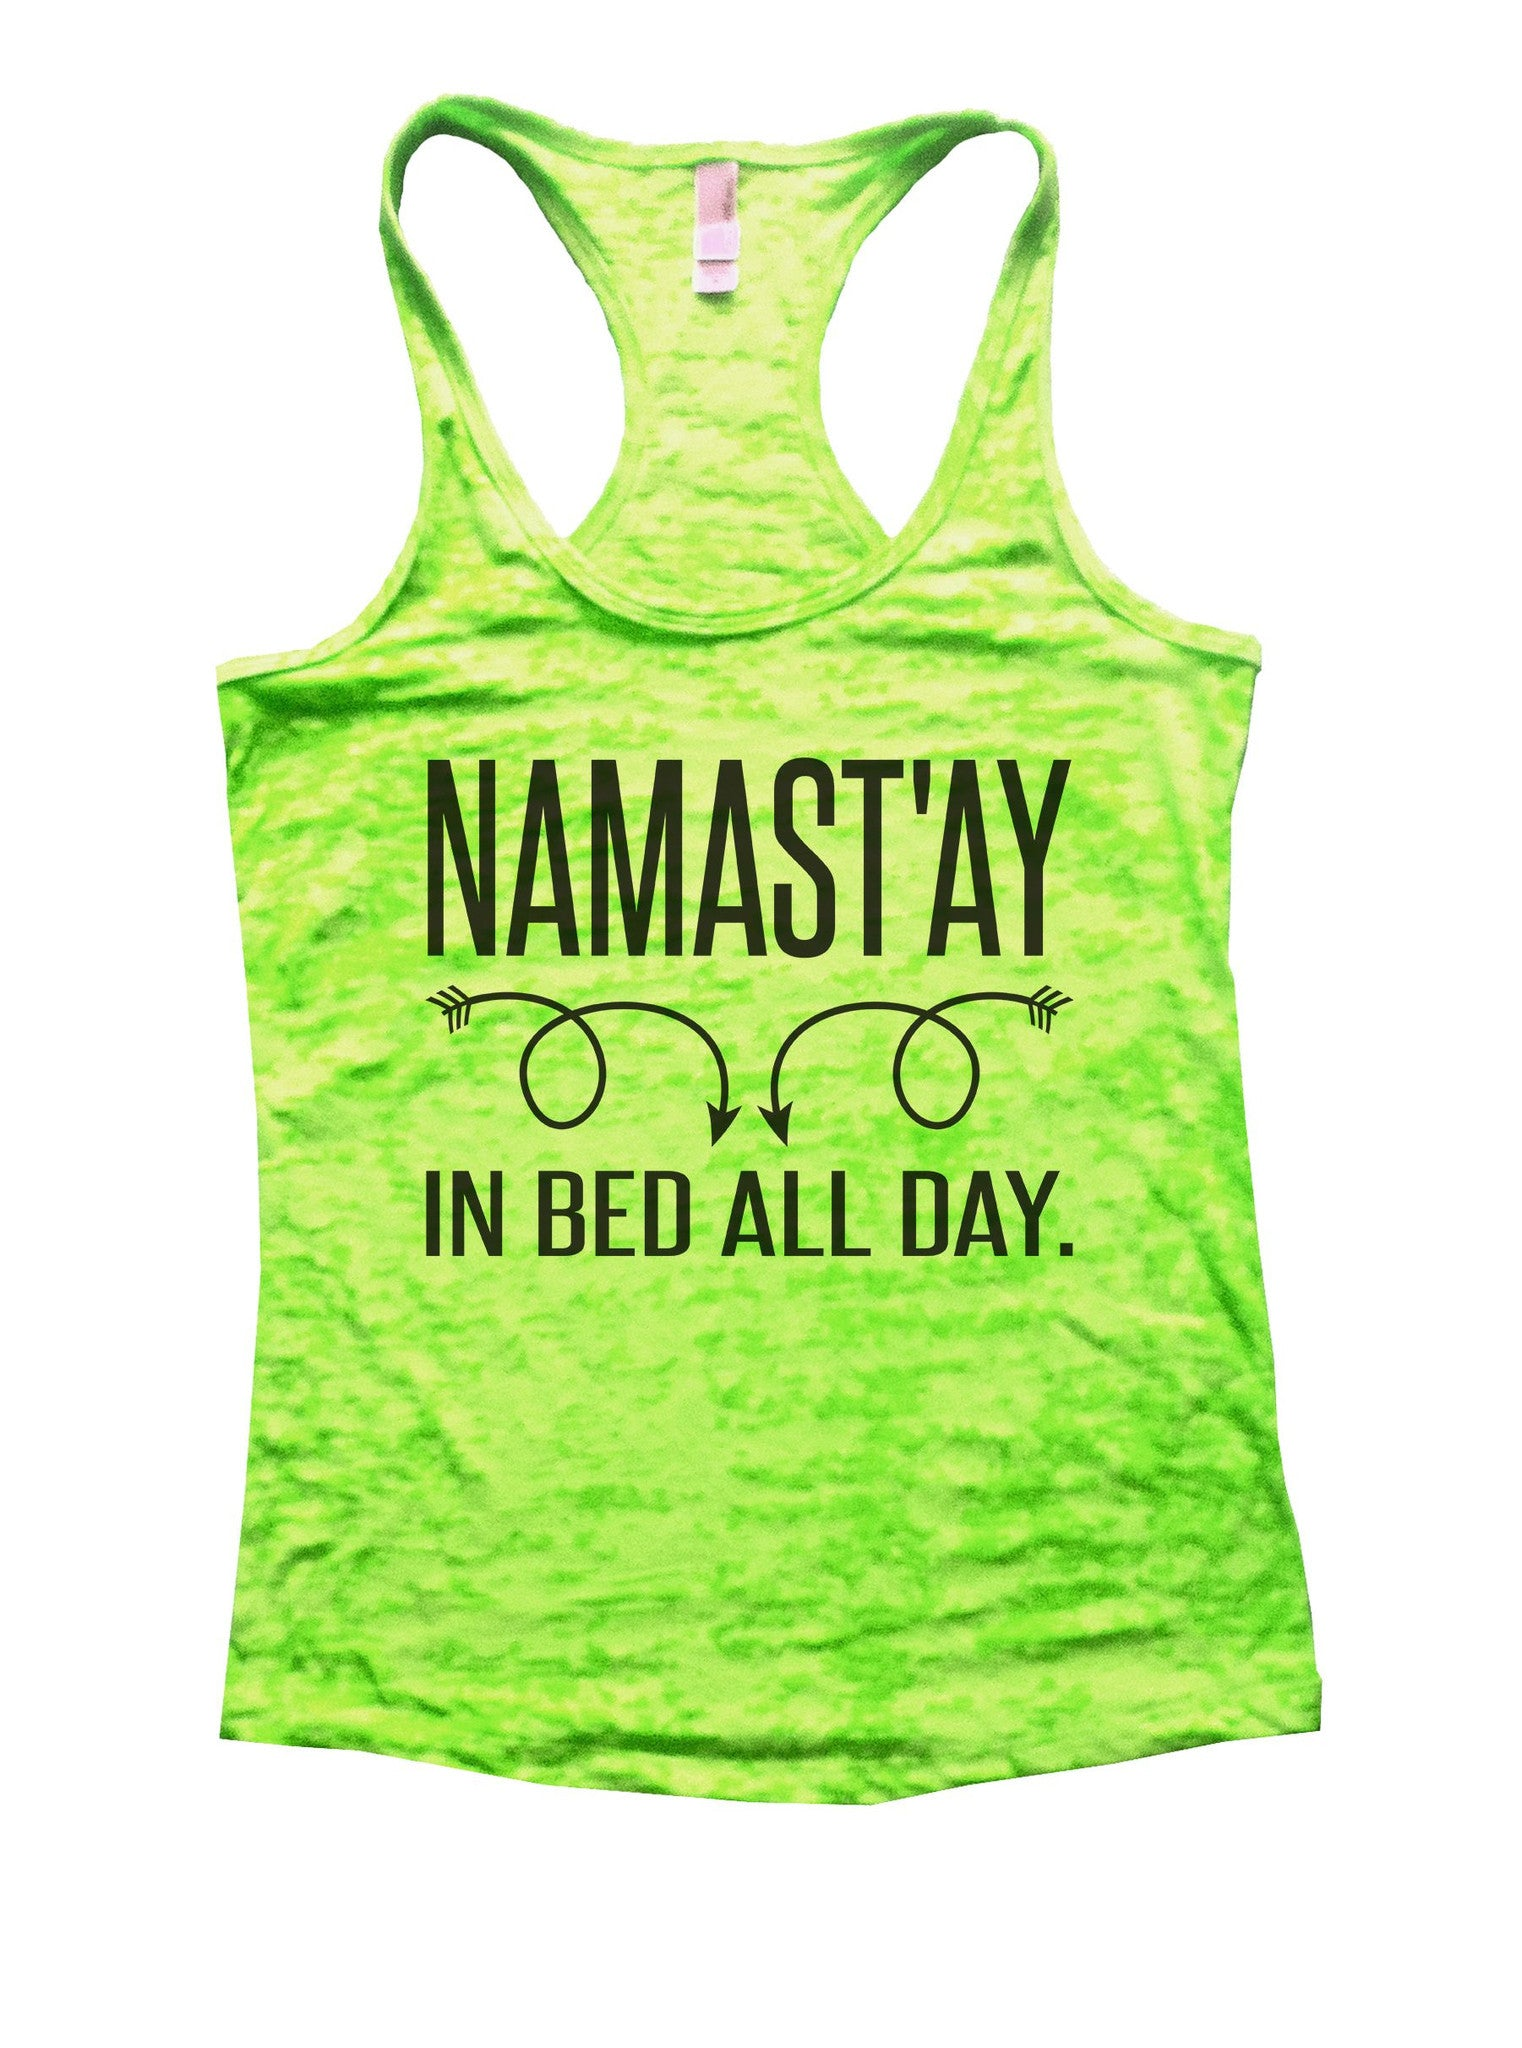 Namastay In Bed All Day Burnout Tank Top By Funny Treadz - 919 - Funny Shirts Tank Tops Burnouts and Triblends  - 2